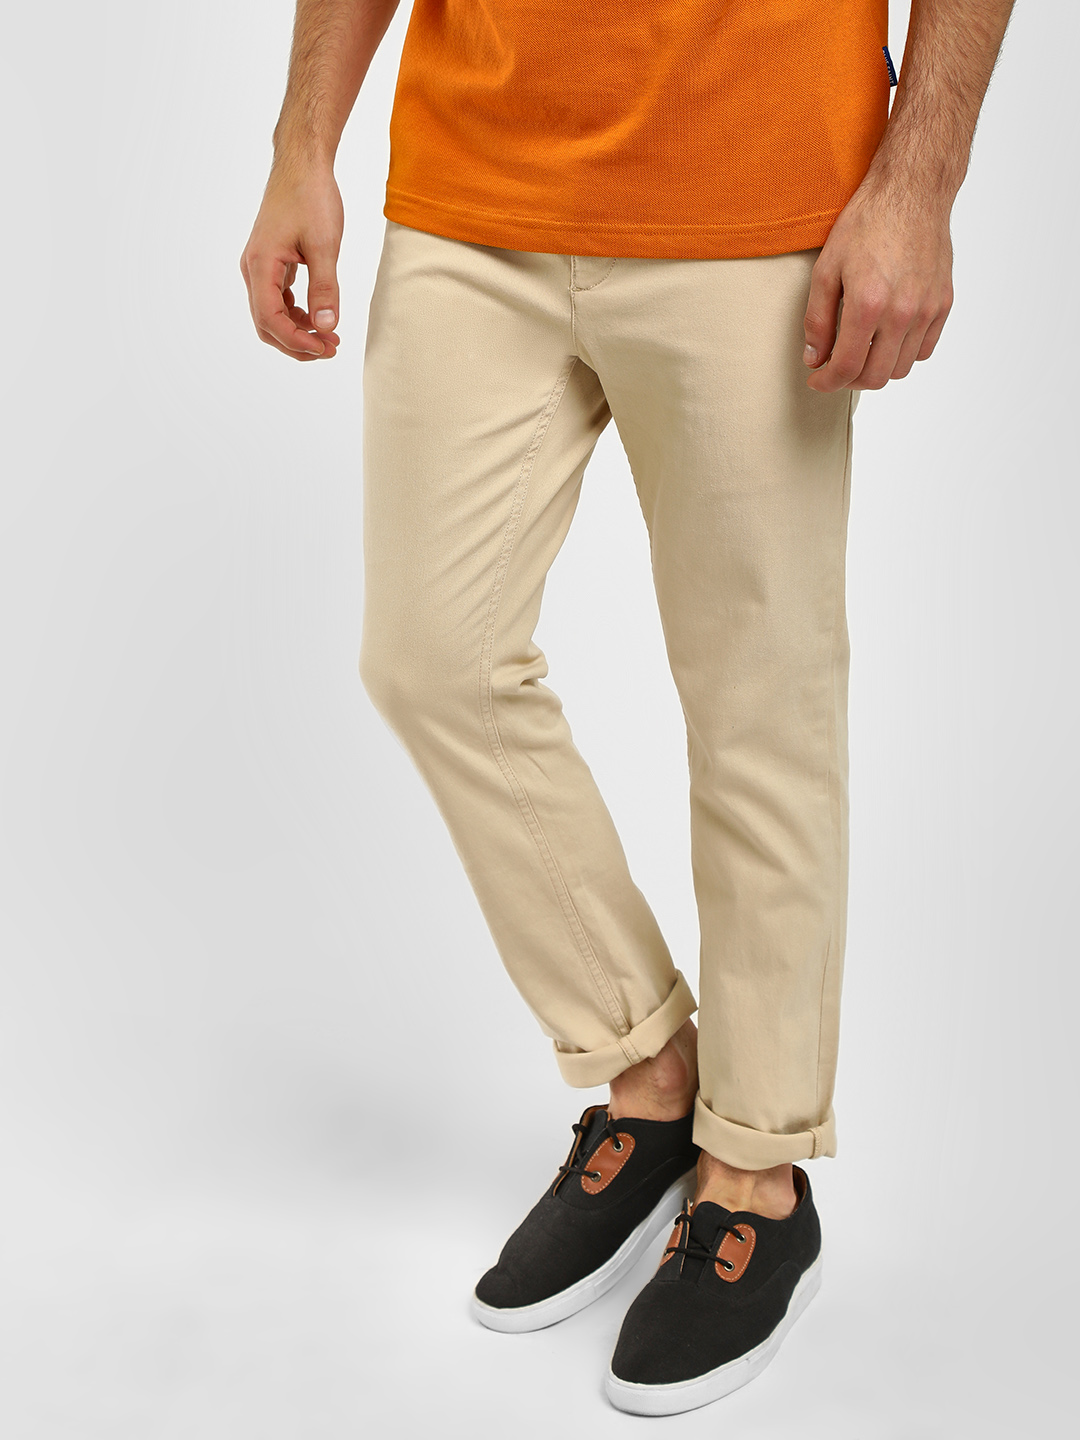 Blue Saint Off-White Washed Slim Fit Chinos 1